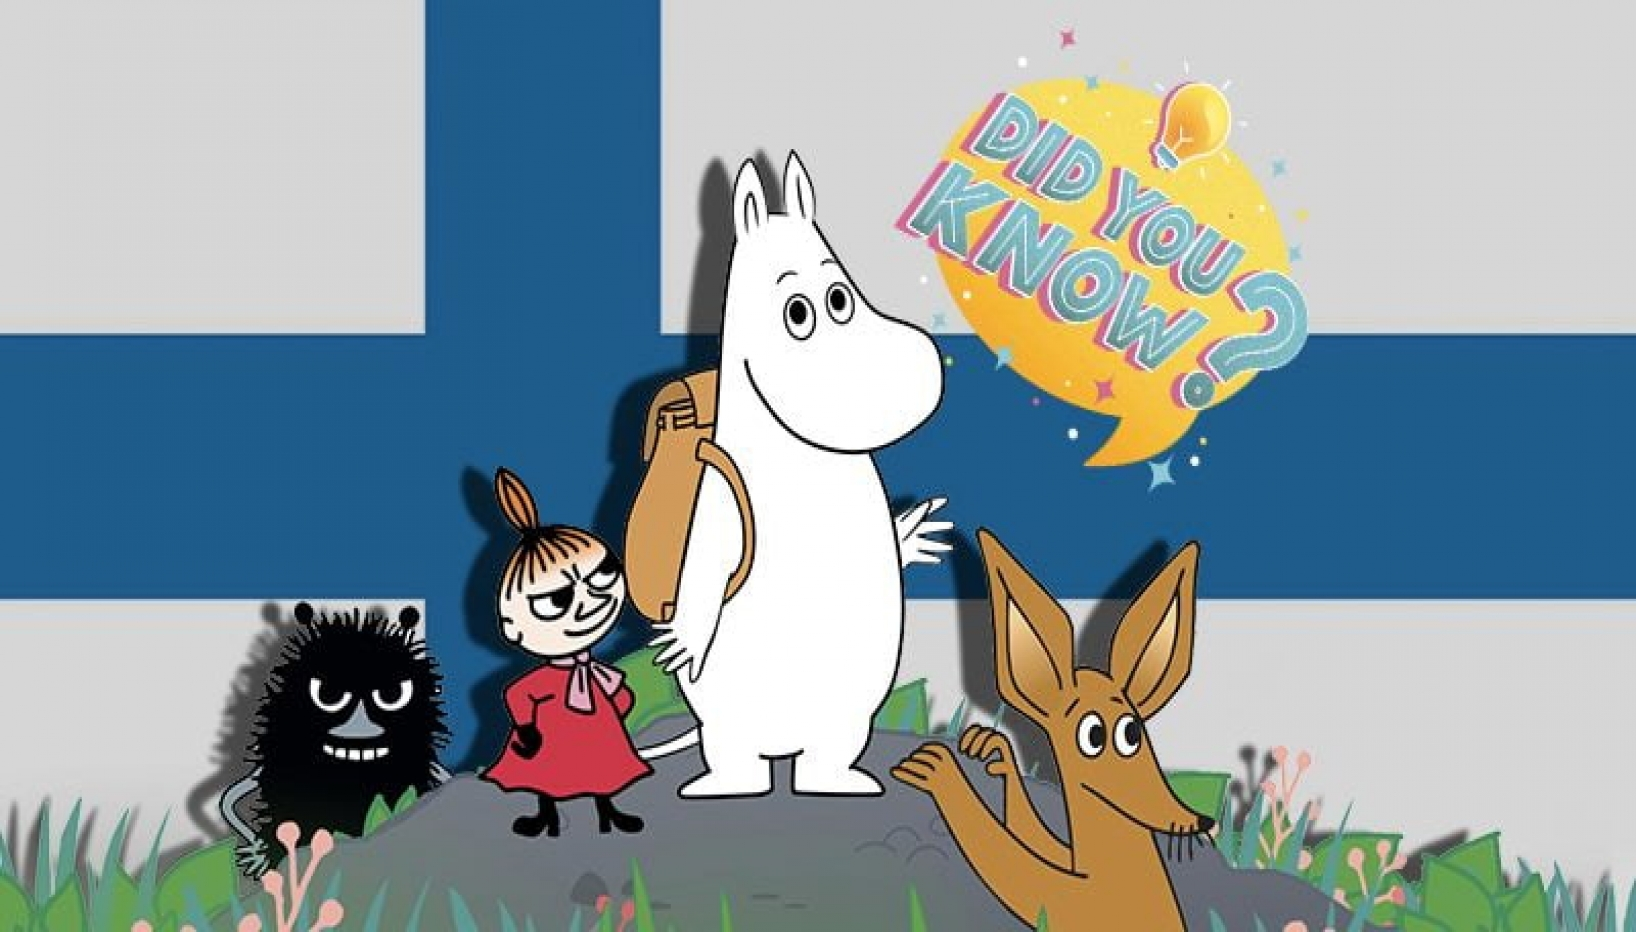 Moomin characters and Finland flag